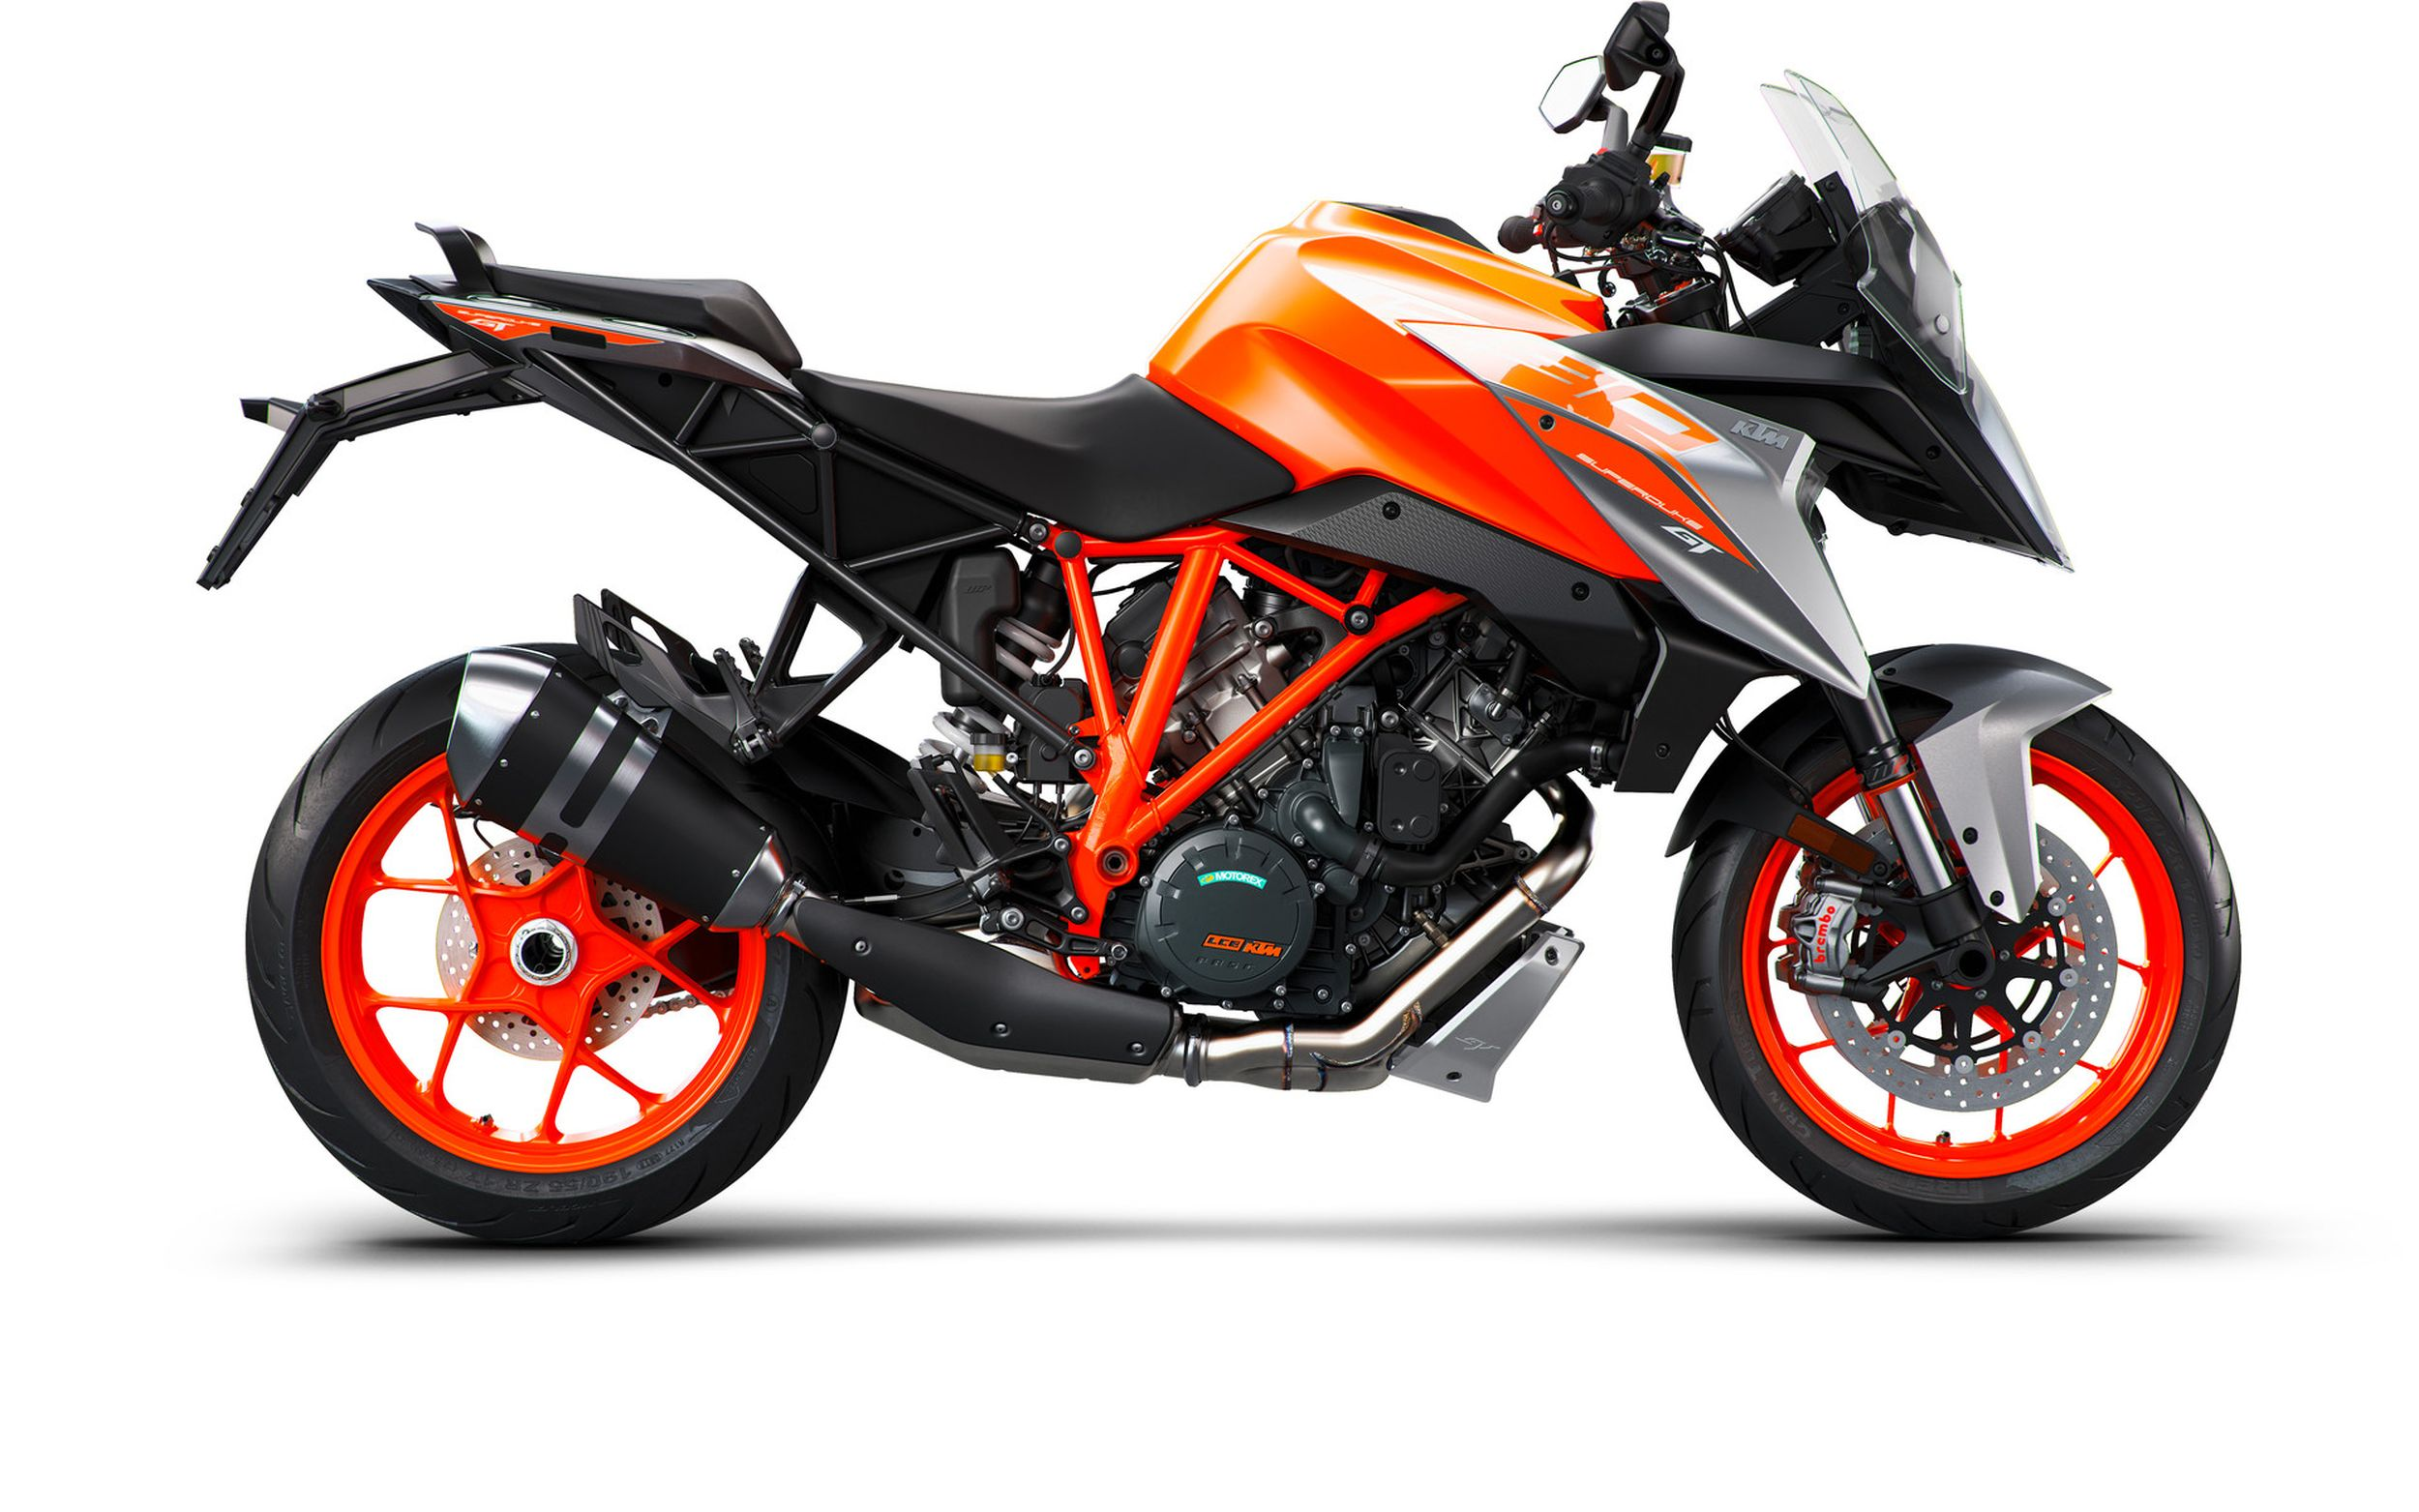 motorrad occasion ktm 1290 super duke gt kaufen. Black Bedroom Furniture Sets. Home Design Ideas